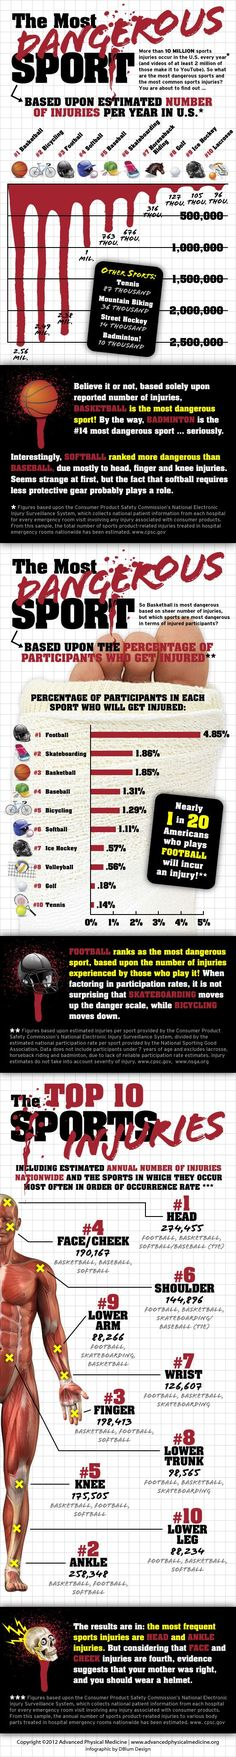 I don't see the #1sport on the planet, soccer(real football) on this infograffic. sports medicine, healthcare, soccer sports medicine